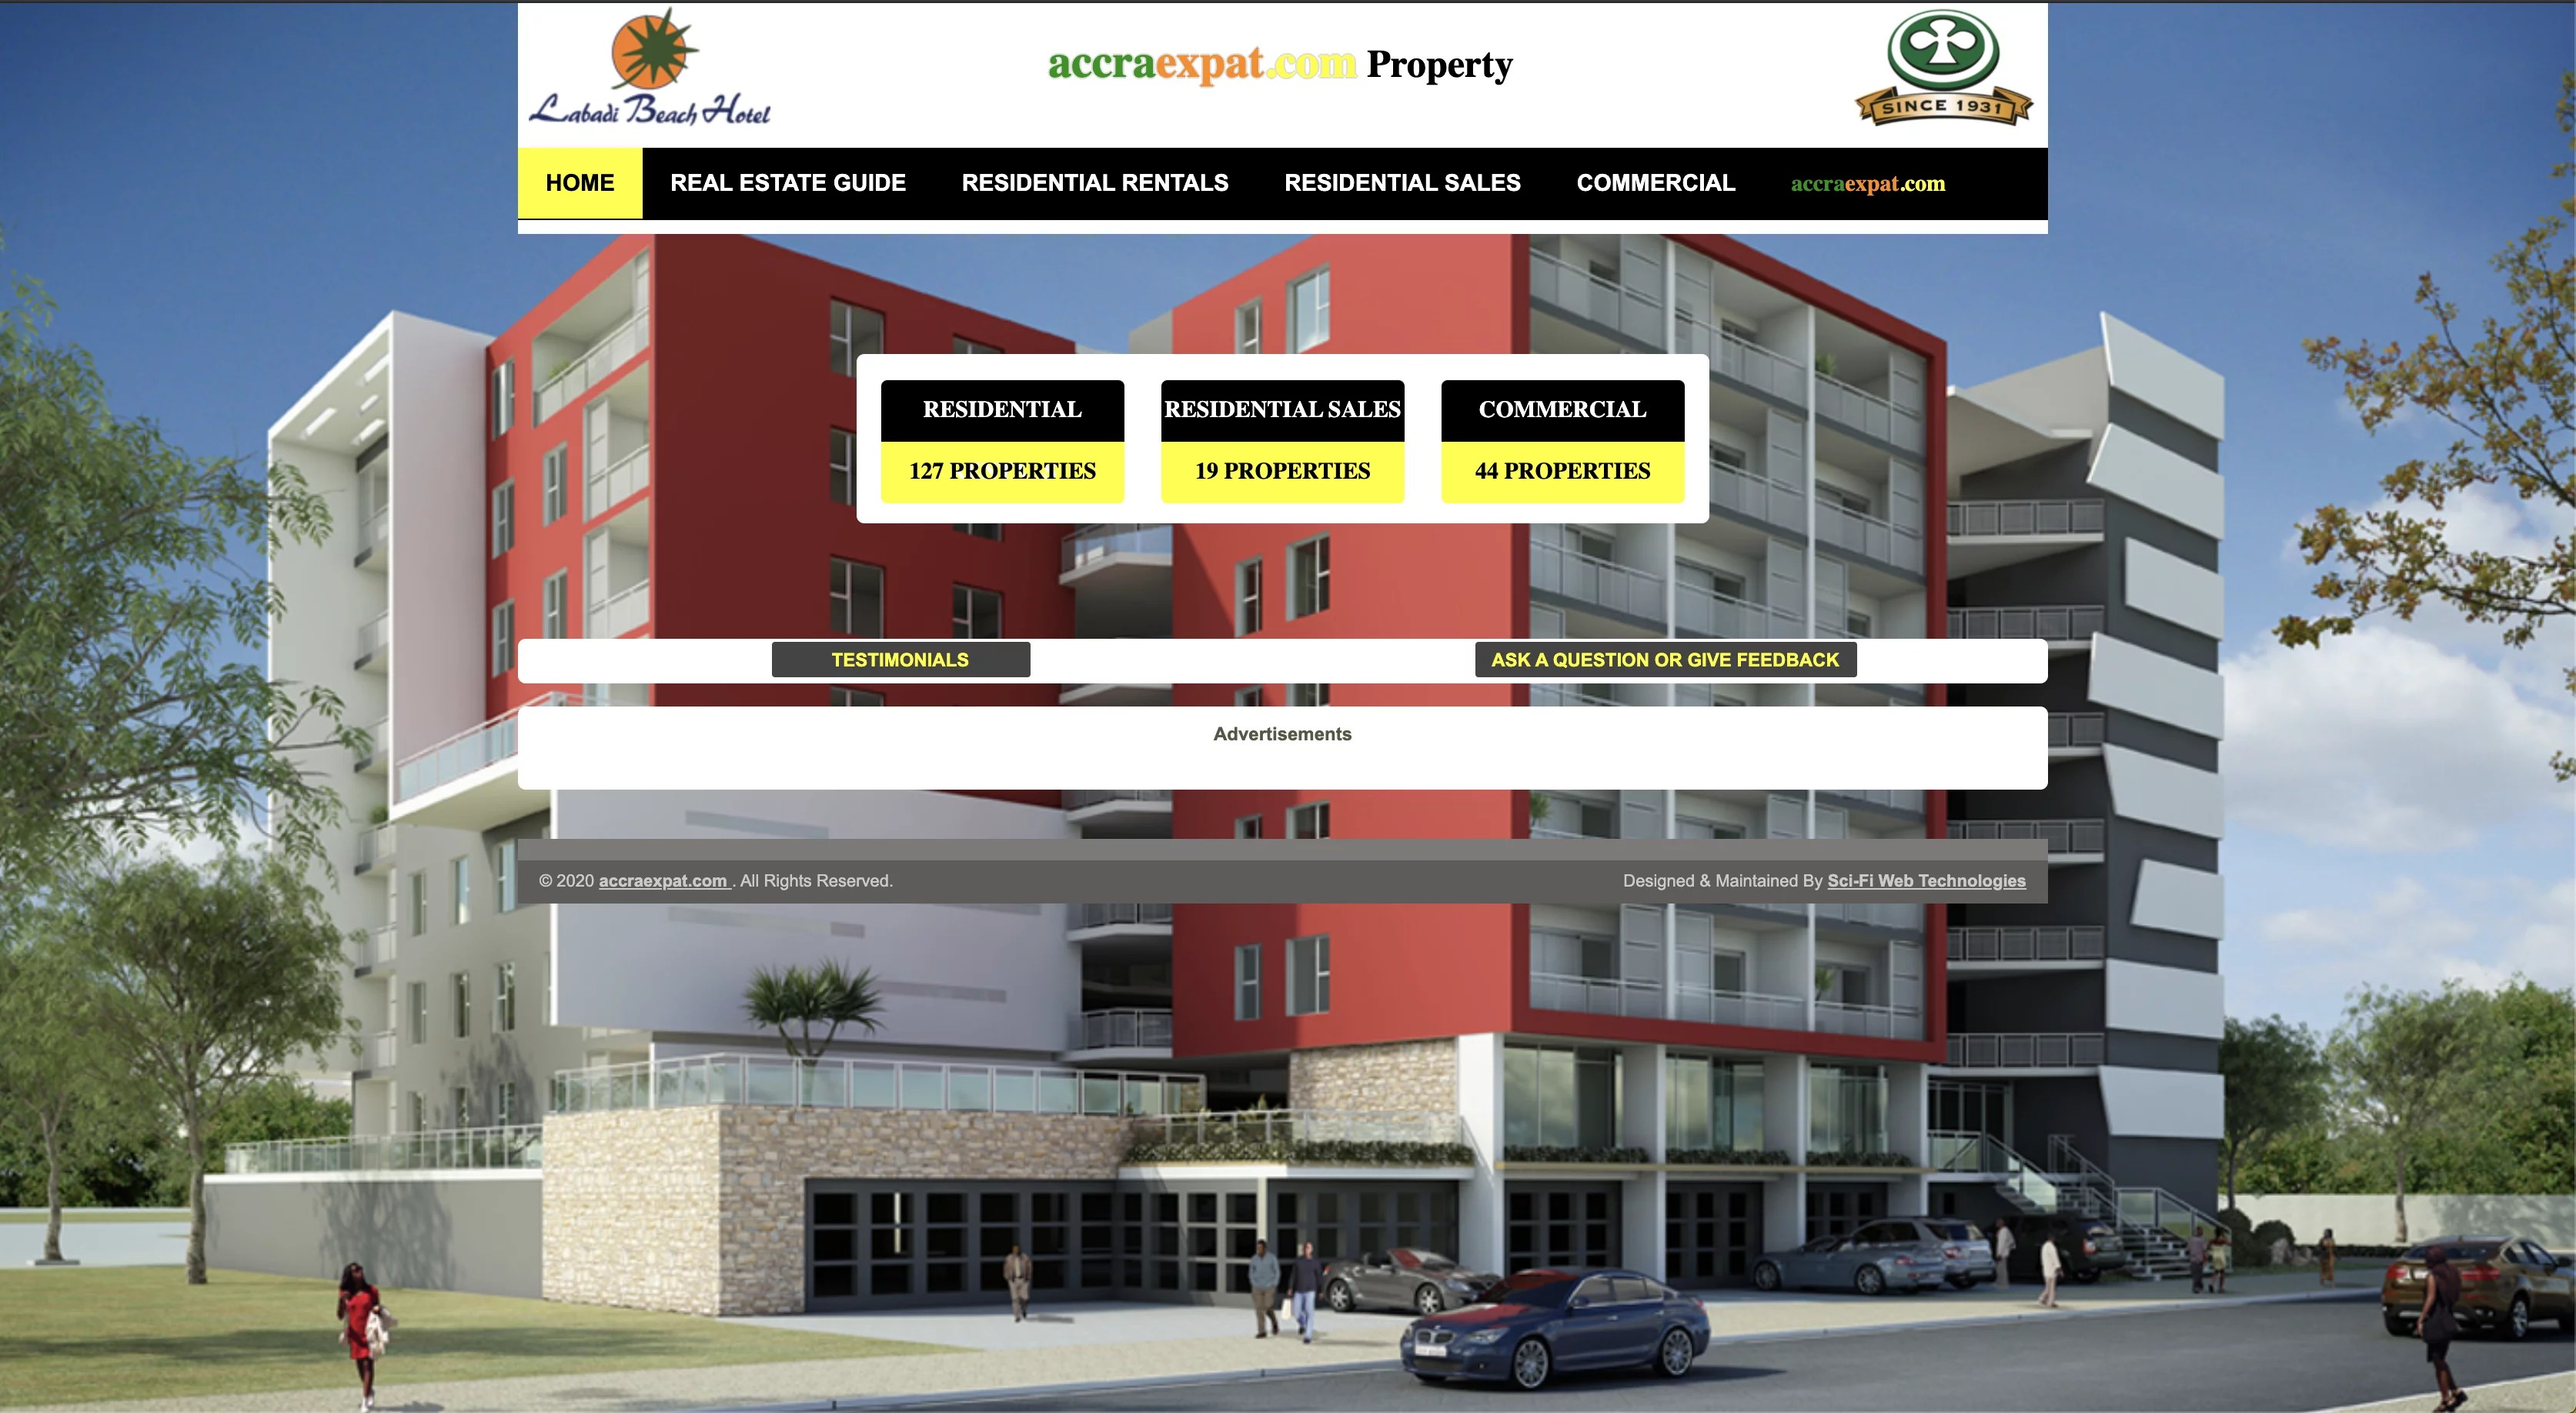 homepage of Accra Expat which also runs an online real estate platform